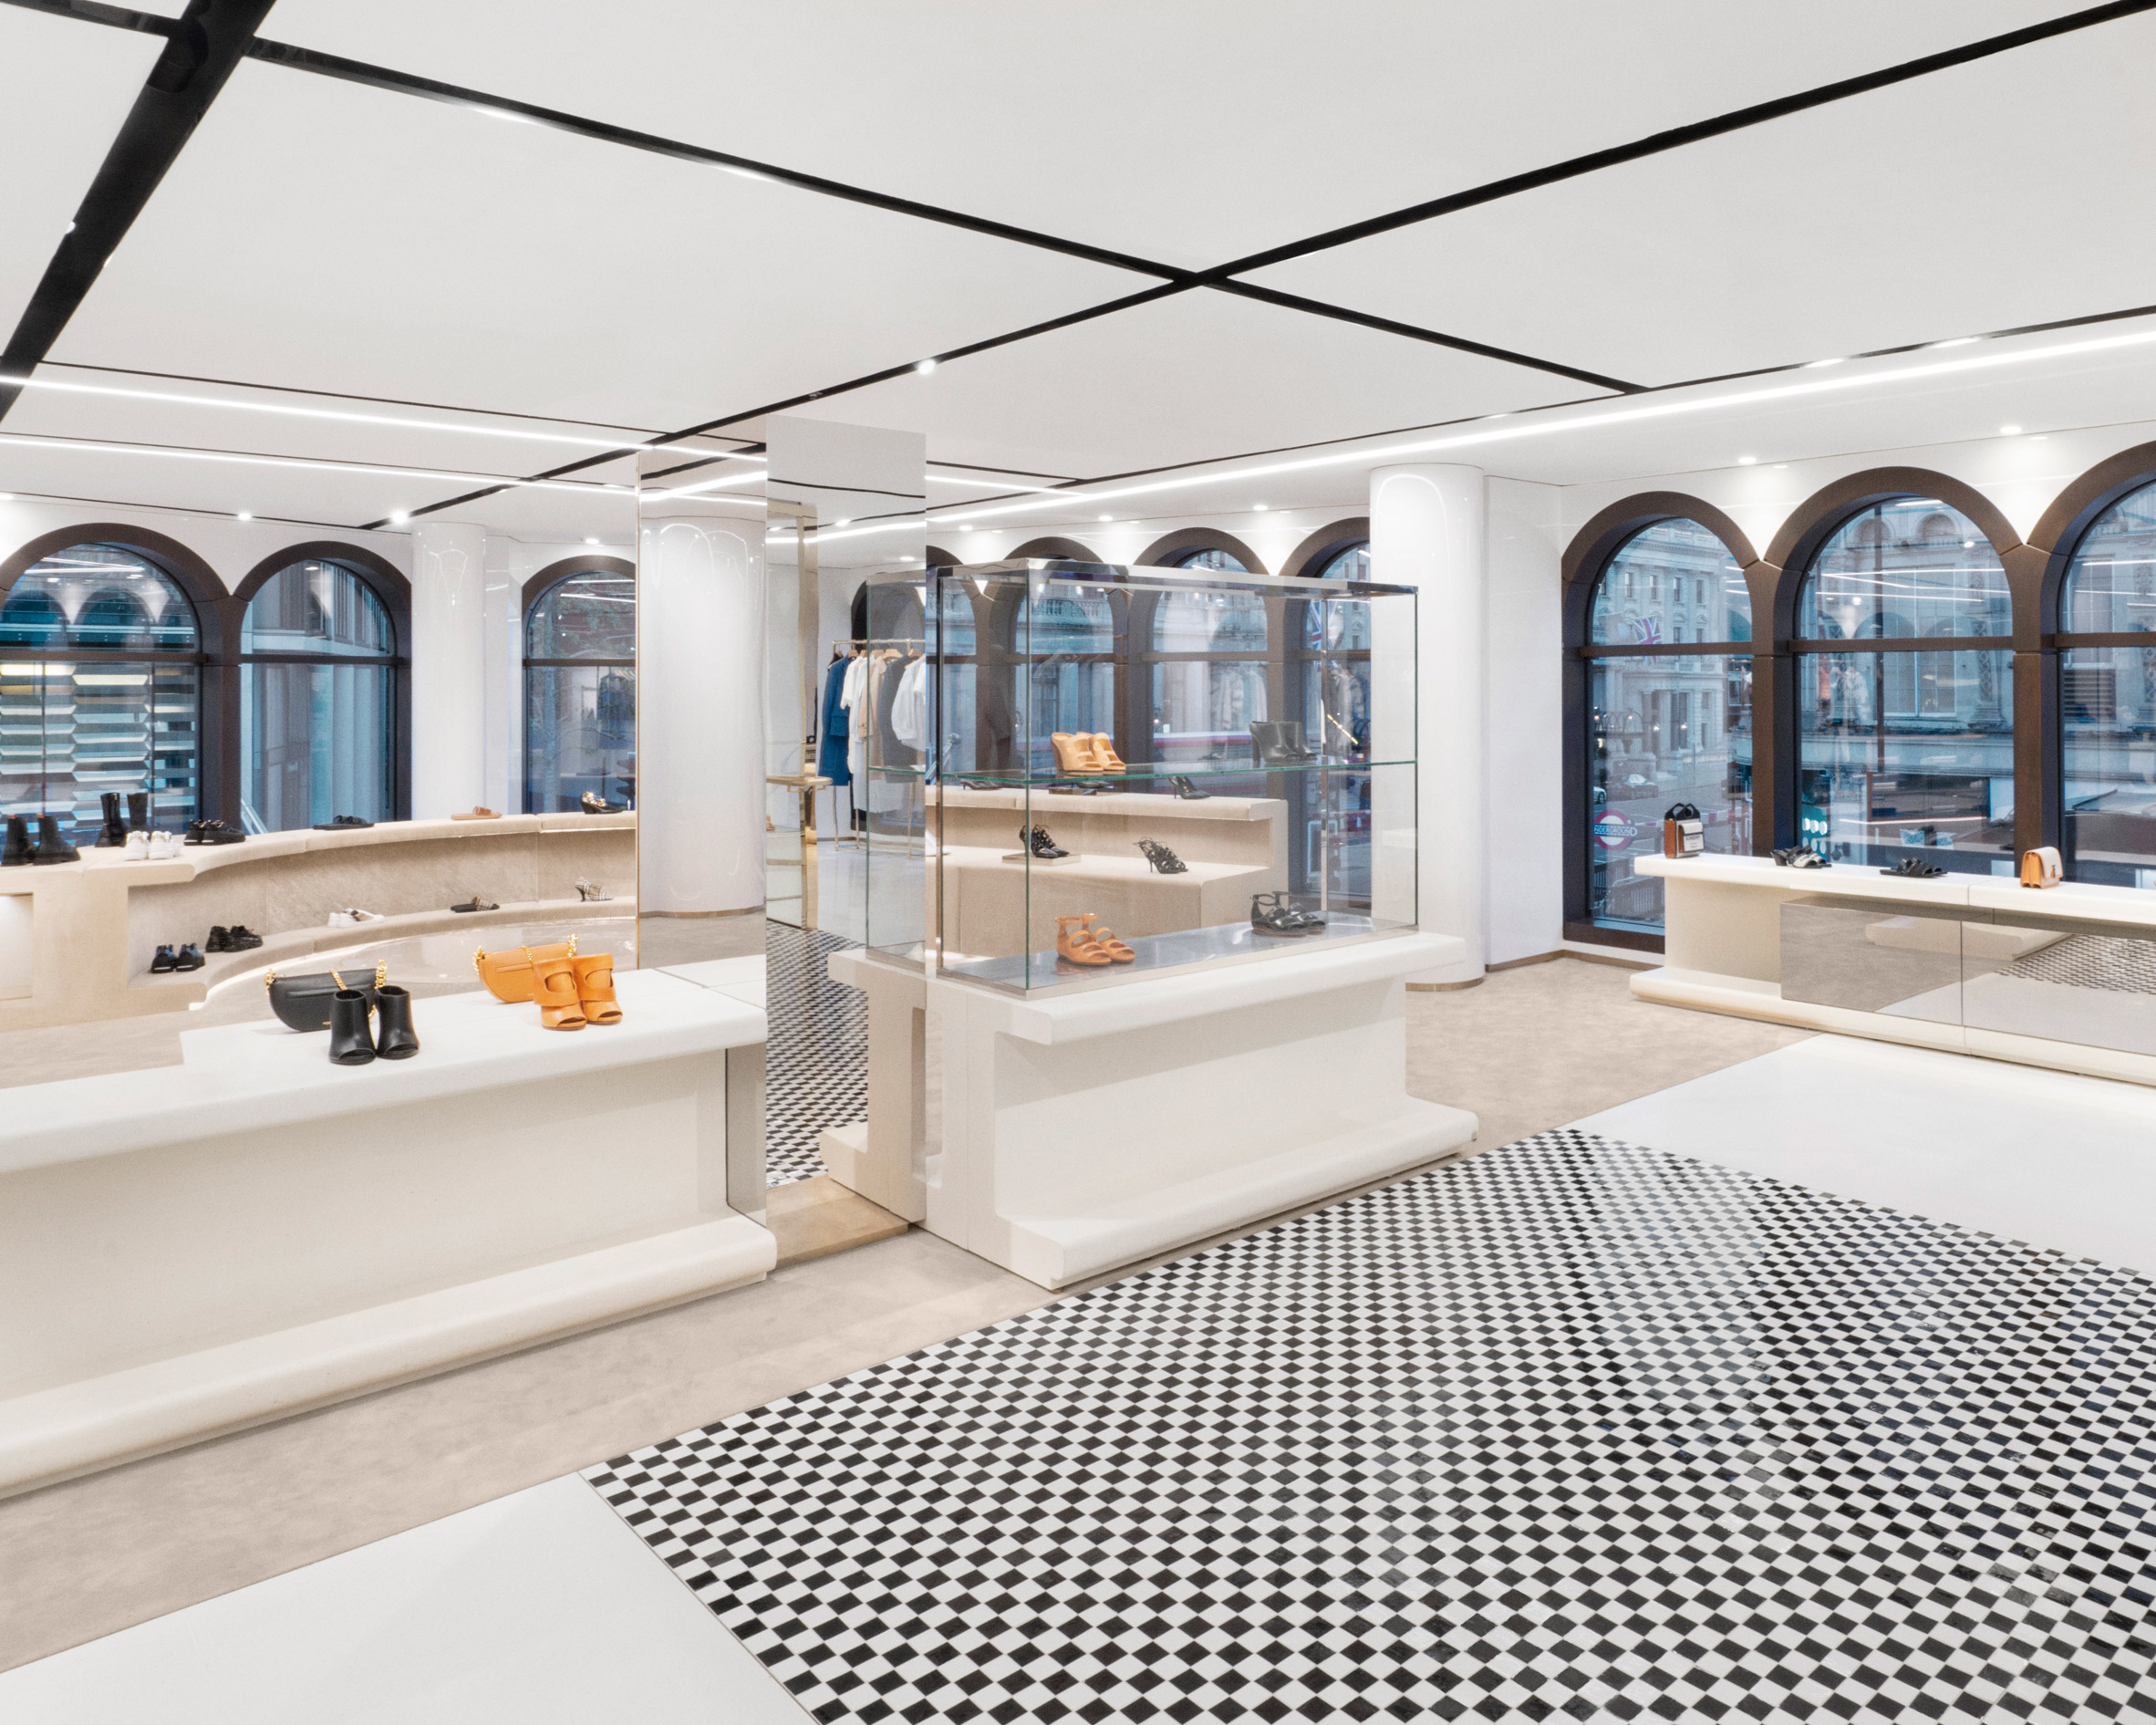 Curved shoe display and checkered floor tiles in No.1 Sloane Street by Vincenzo De Cotiis